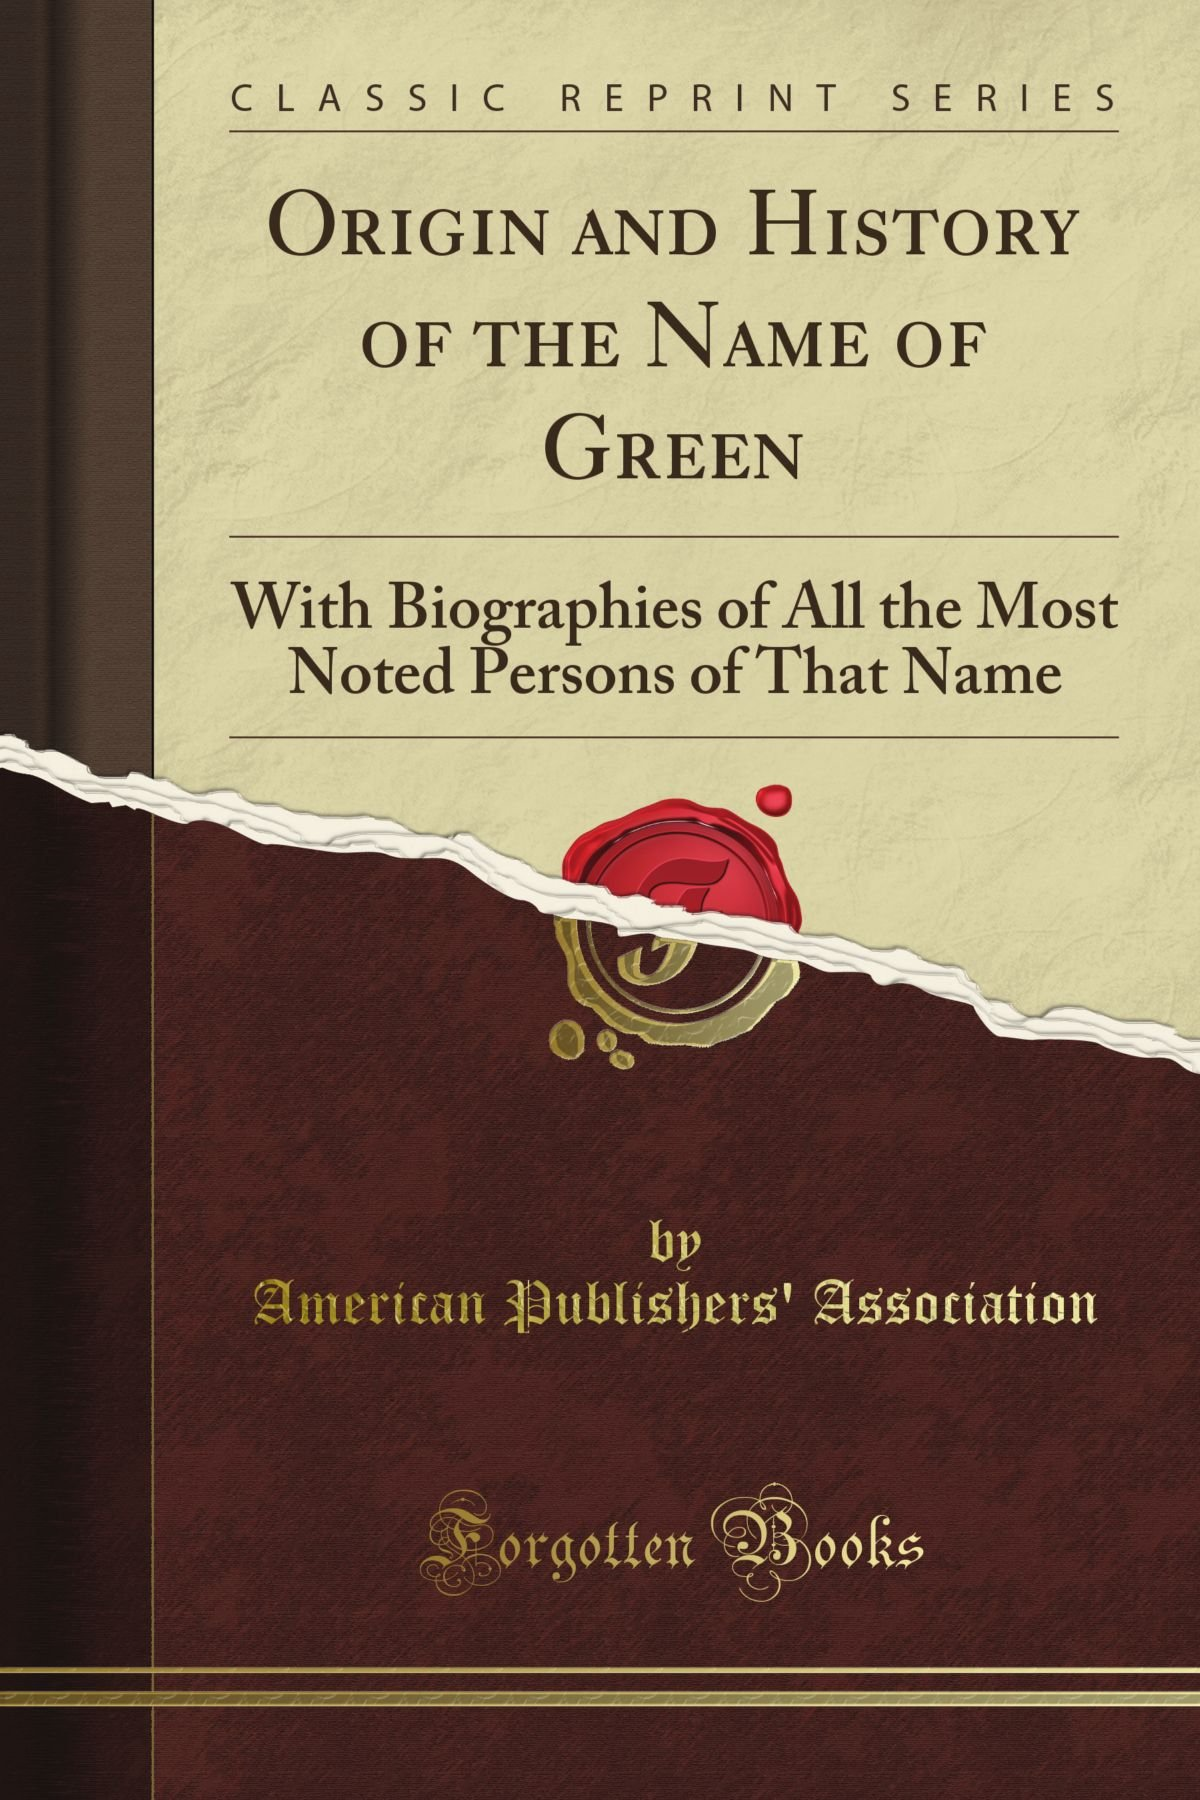 Read Online Origin and History of the Name of Green, With Biographies of All the Most Noted Persons of That Name (Classic Reprint) PDF